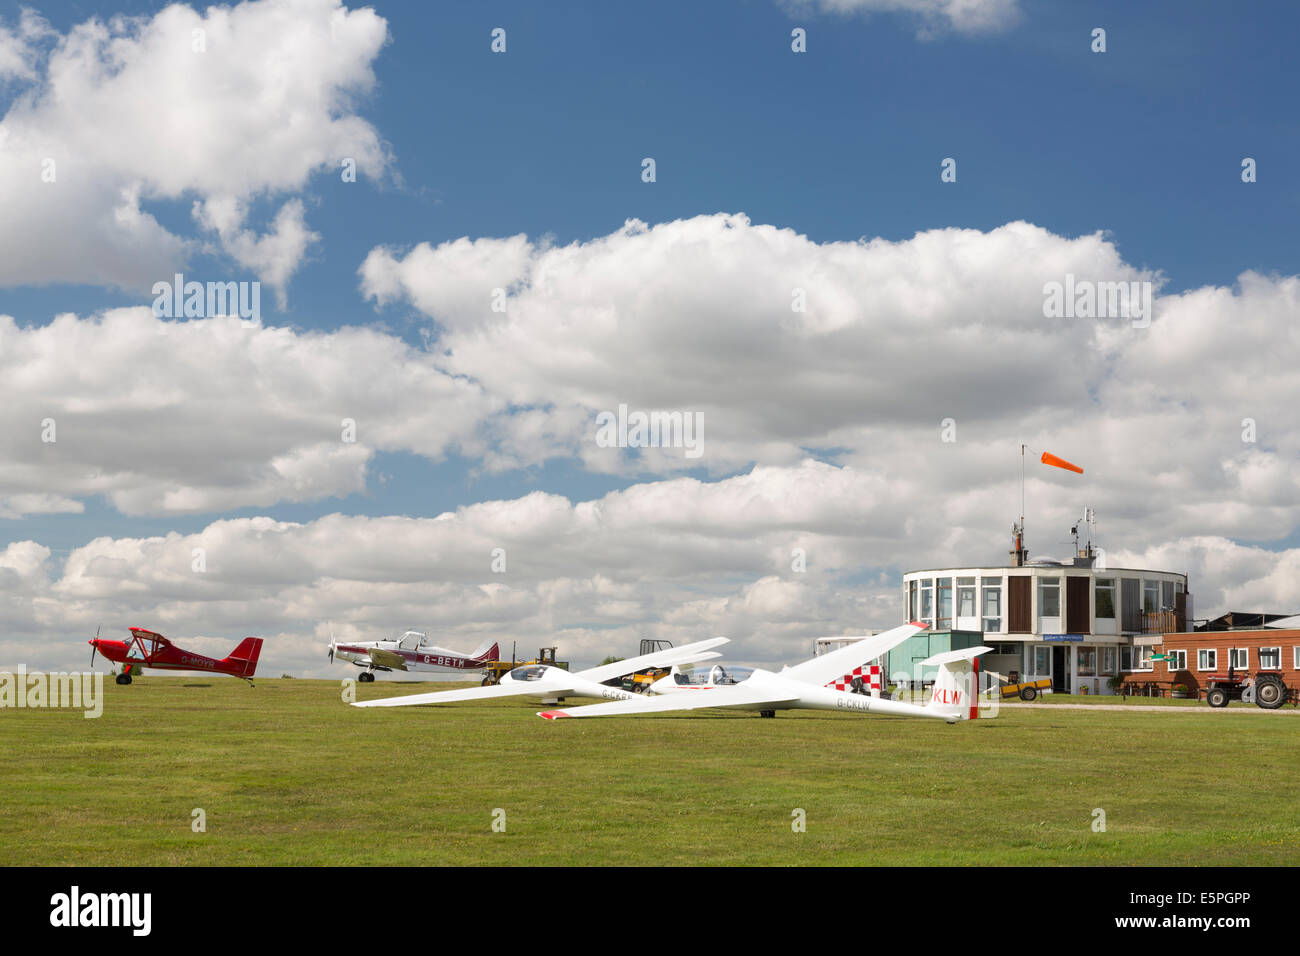 Gliders waiting for take off at the Yorkshire Gliding Club, Sutton bank, North Yorkshire, England. - Stock Image